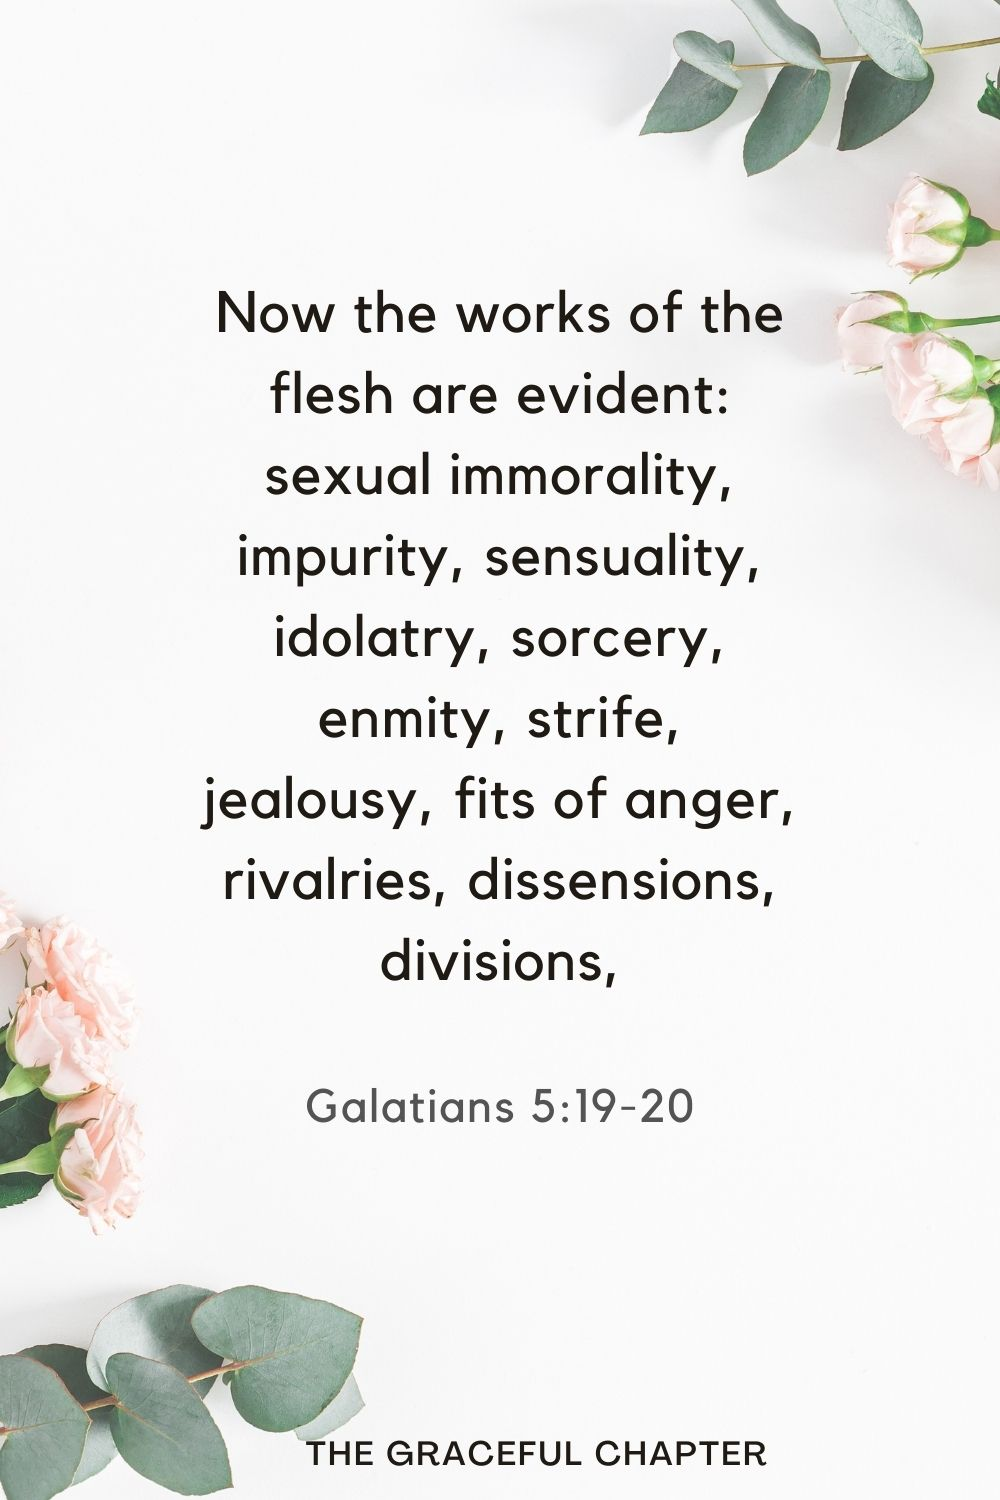 Now the works of the flesh are evident: sexual immorality, impurity, sensuality, idolatry, sorcery, enmity, strife, jealousy, fits of anger, rivalries, dissensions, divisions, Galatians 5:19-20